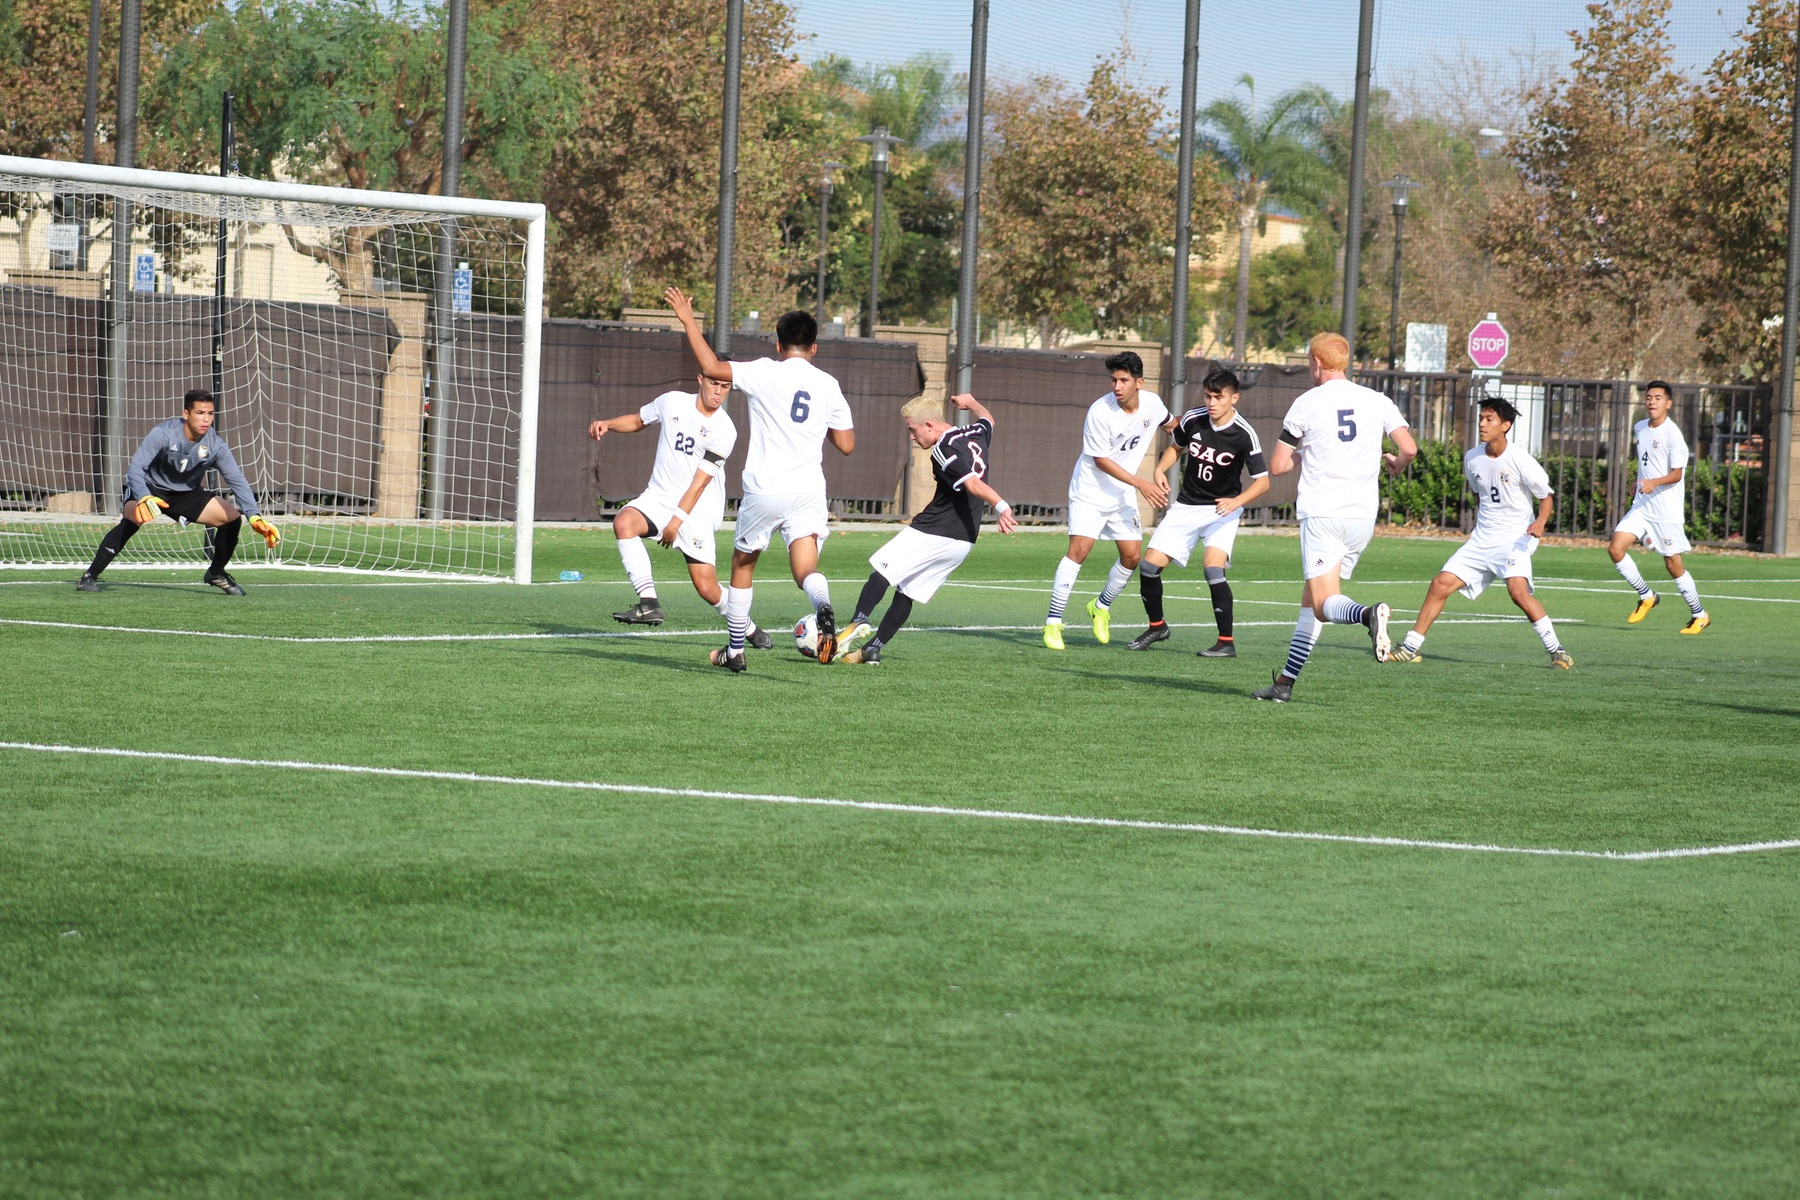 Dons Keep Pace With 2-1 Win Over Fullerton